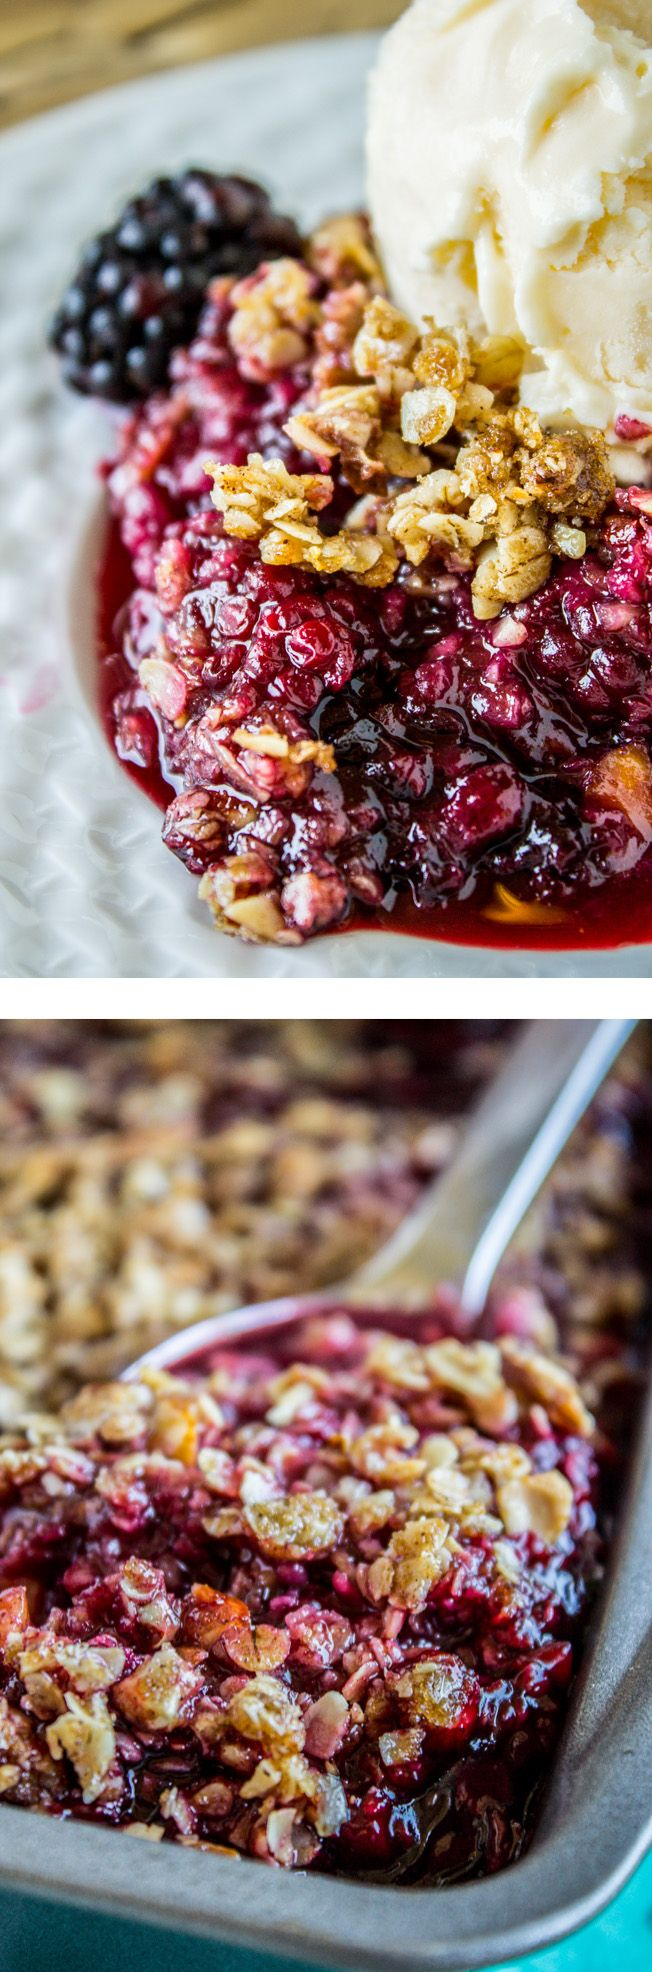 Easy Blackberry Cobbler with Oat Crunch Topping from The Food Charlatan. This to-die-for Blackberry Cobbler is so easy it's ridiculous! The crunchy oat topping comes together super fast, and is the perfect compliment to summer's finest offering: blackberries. DON'T eat this without vanilla ice cream!